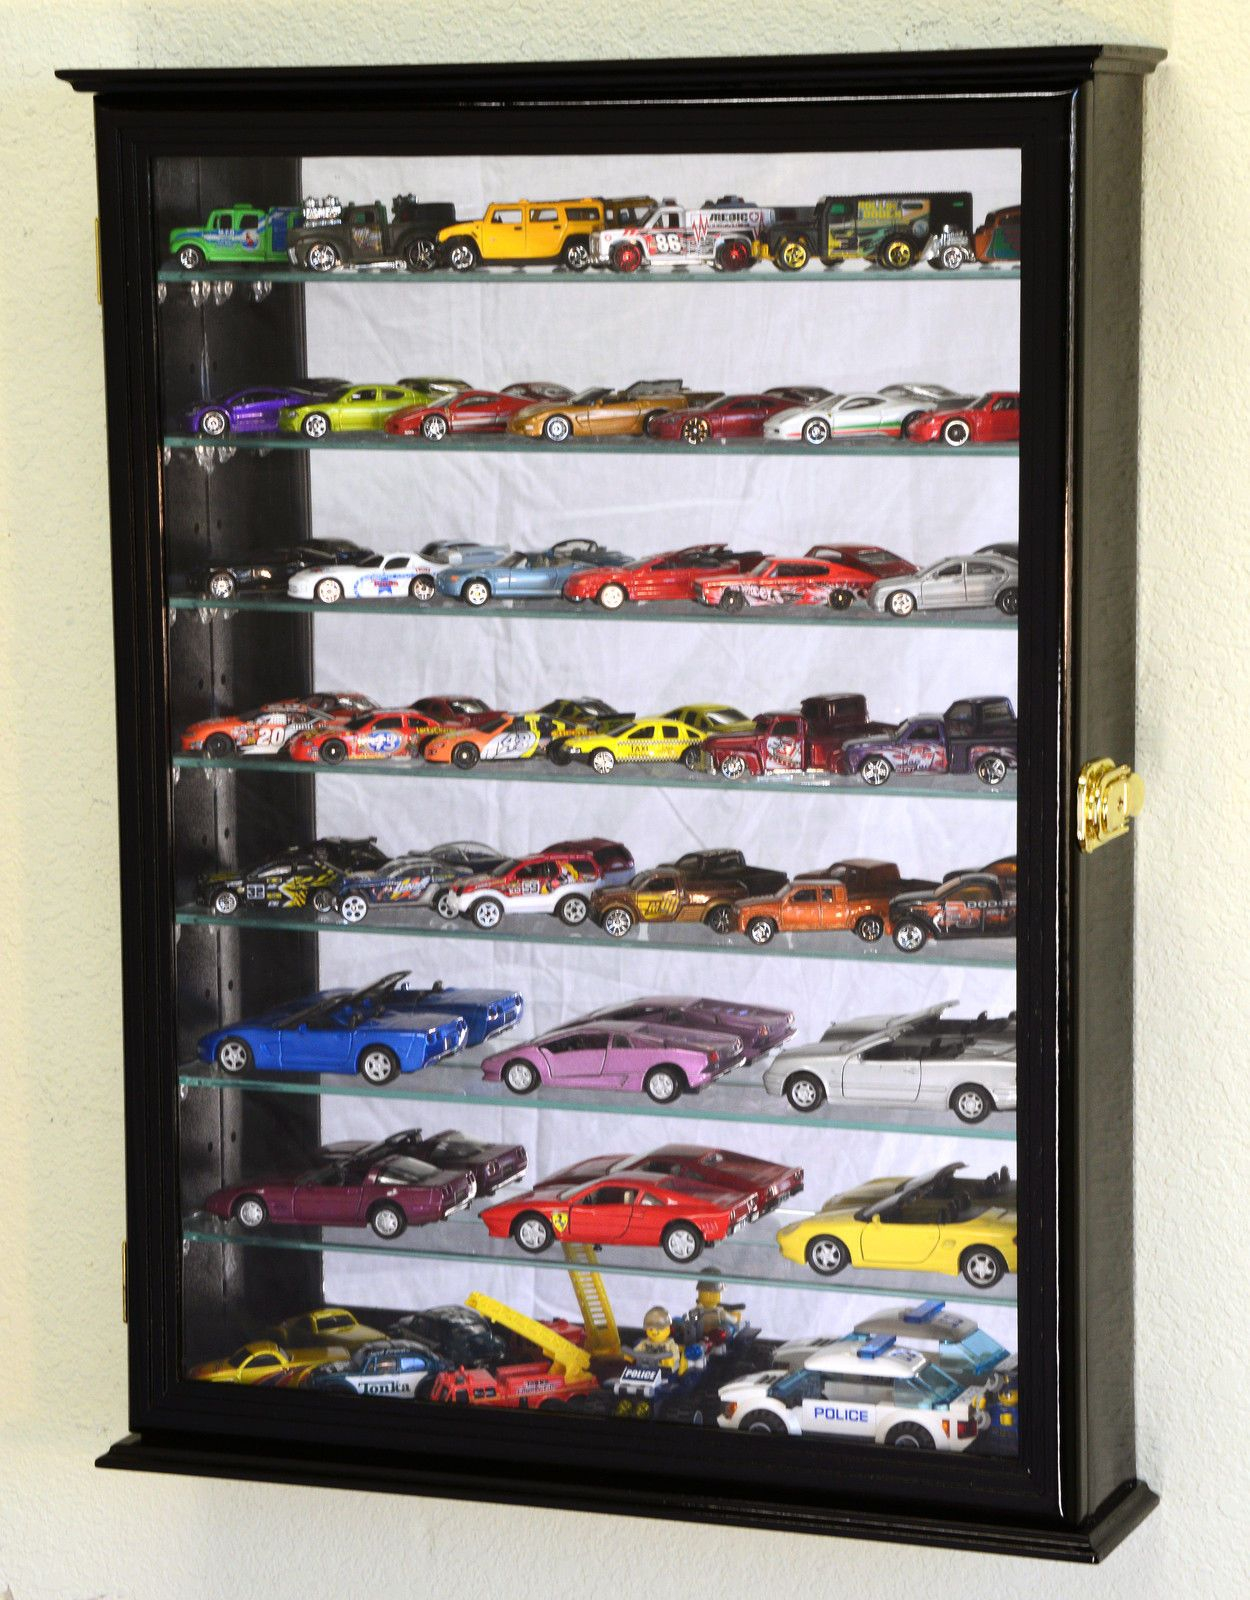 7 Shelves Hot Wheels Matchbox Diecast Cars 164 143 Model Display intended for sizing 1250 X 1600